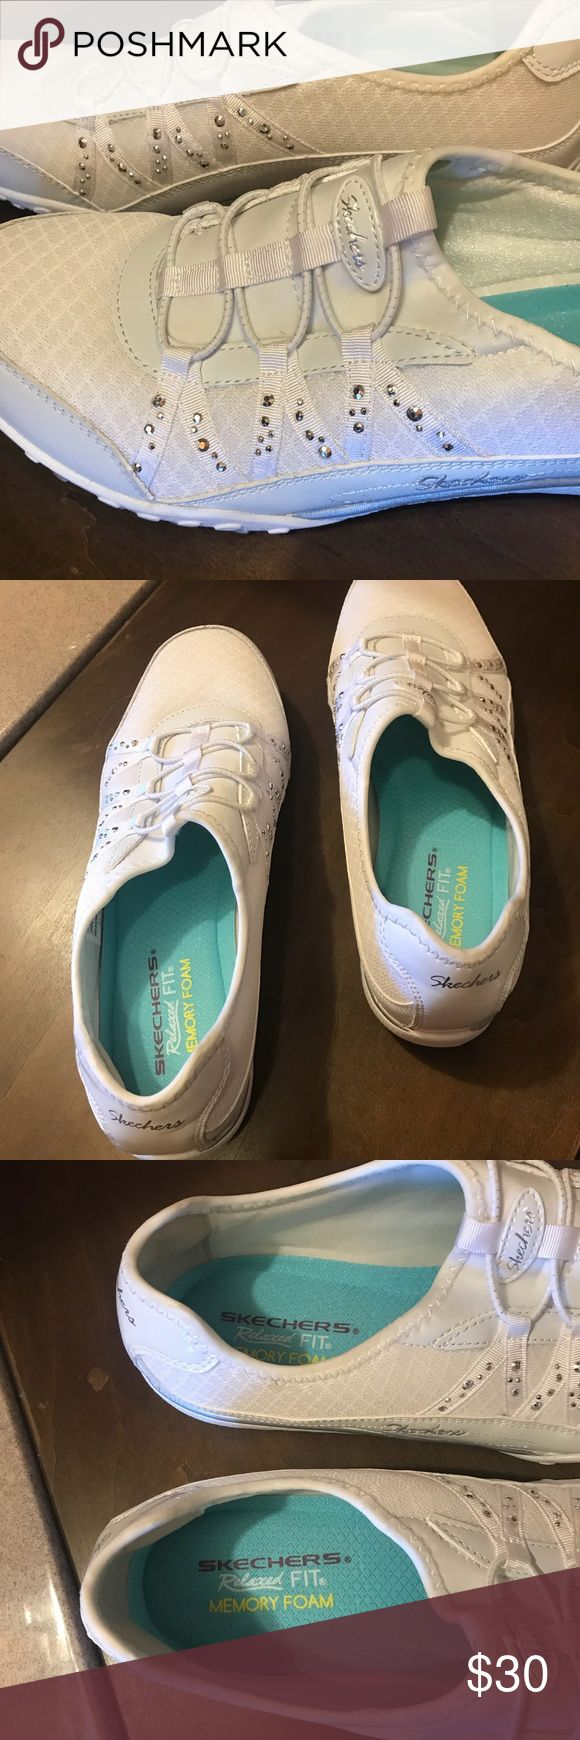 Skechers memory foam slip on tennis shoes size 9 Skechers memory foam tennis shoes - size 9 - slip on- only worn once - White with rhinestones Skechers Shoes Athletic Shoes